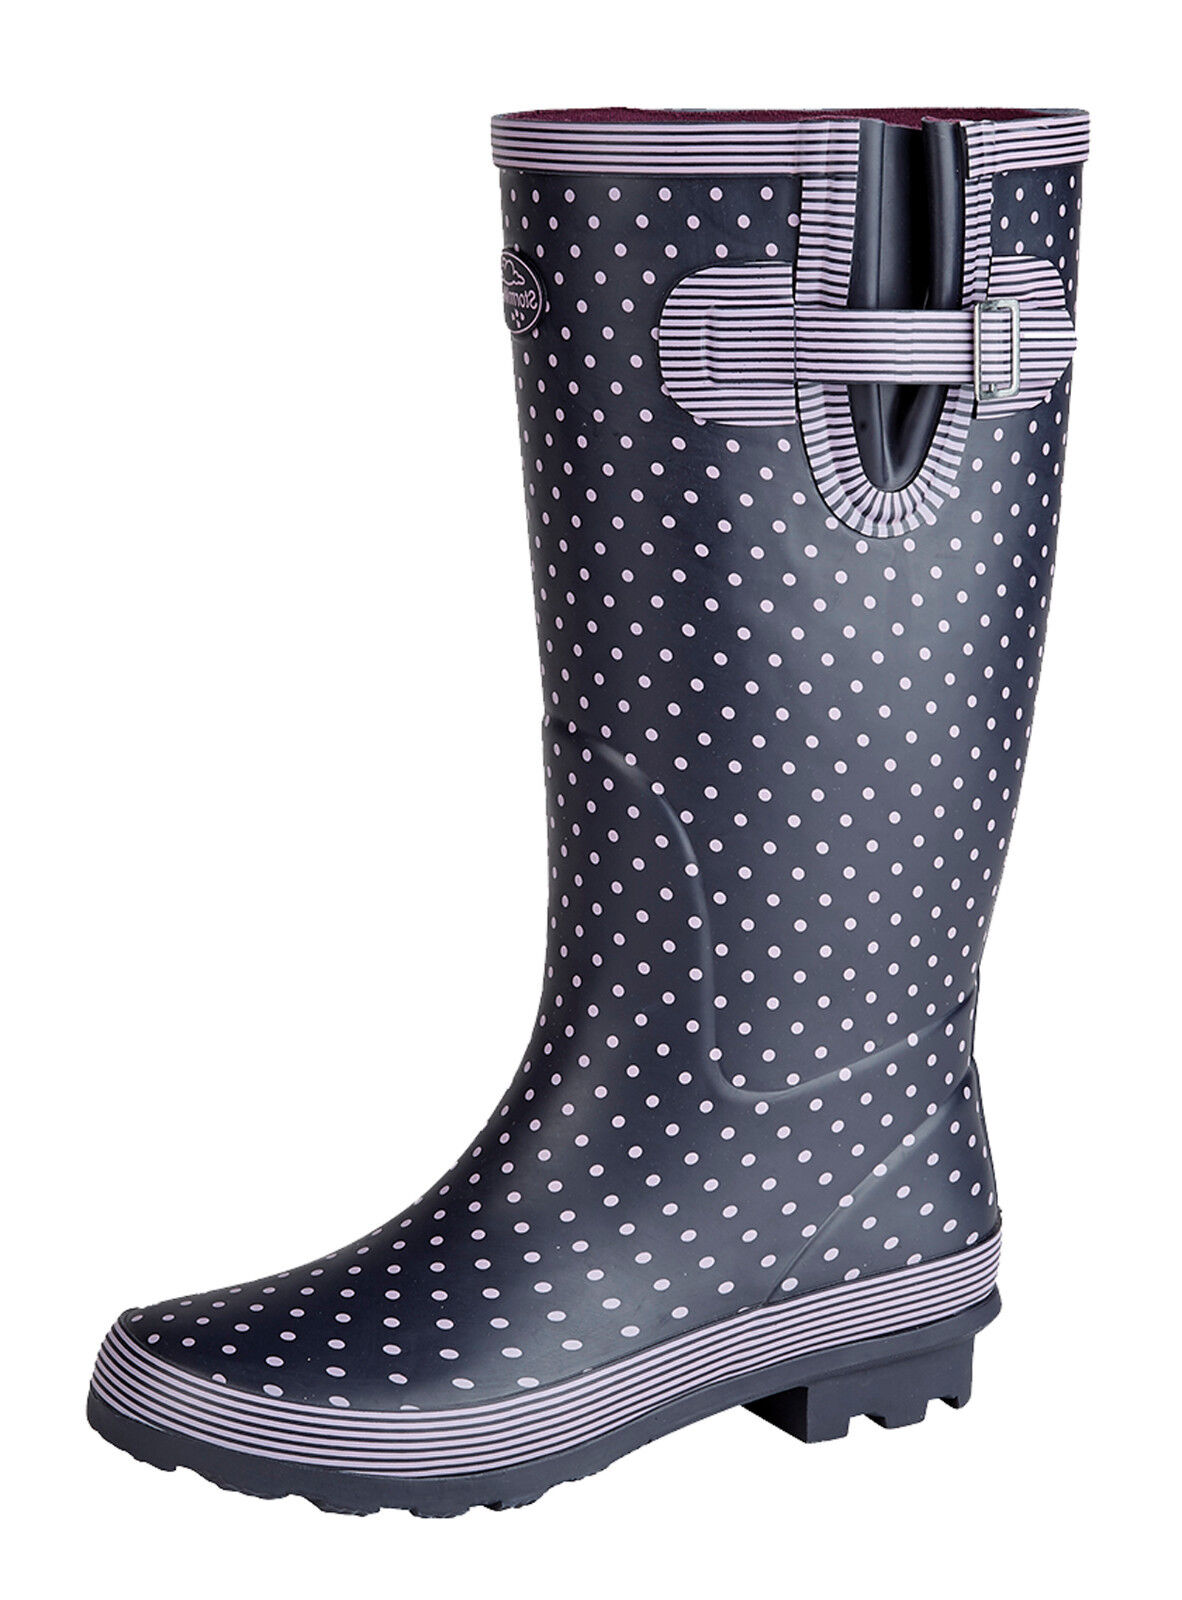 06457c1c423 Funky Festival Waterproof Boots. Wide Fitting Leg Avg.32cm High Leg Rubber  Sole Available in sizes 3 to 9.